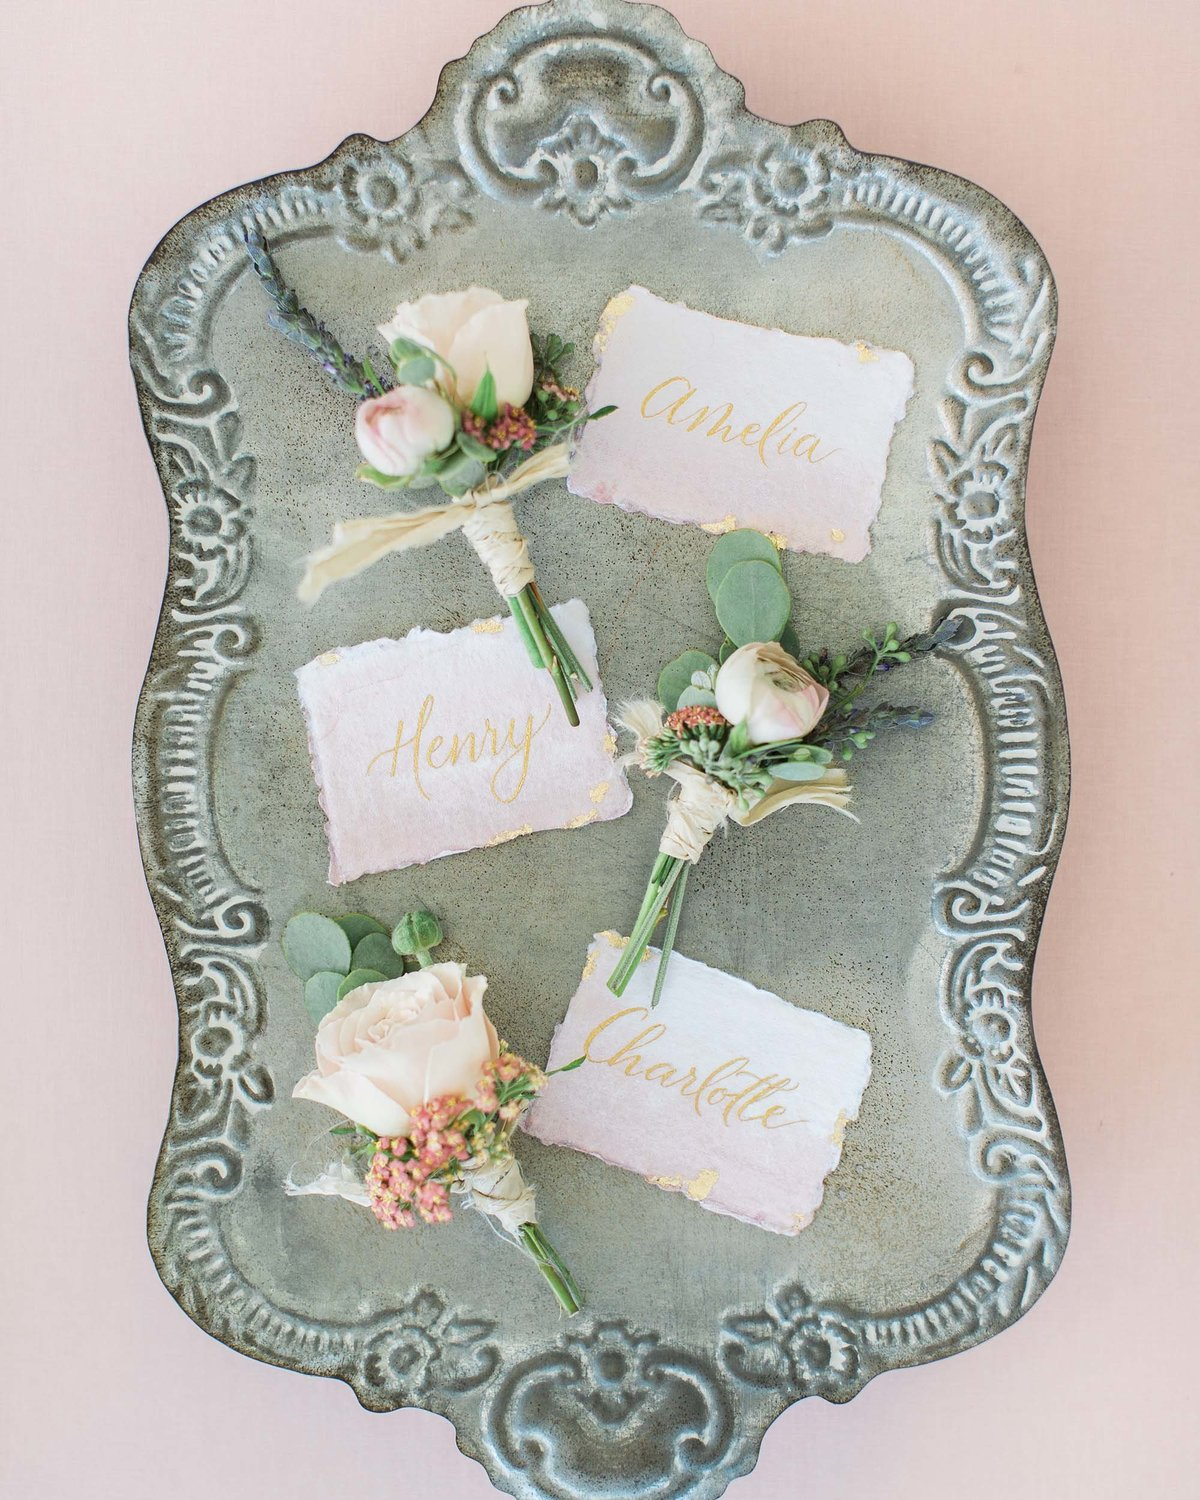 Plume & Fete watercolor wash dainty place cards